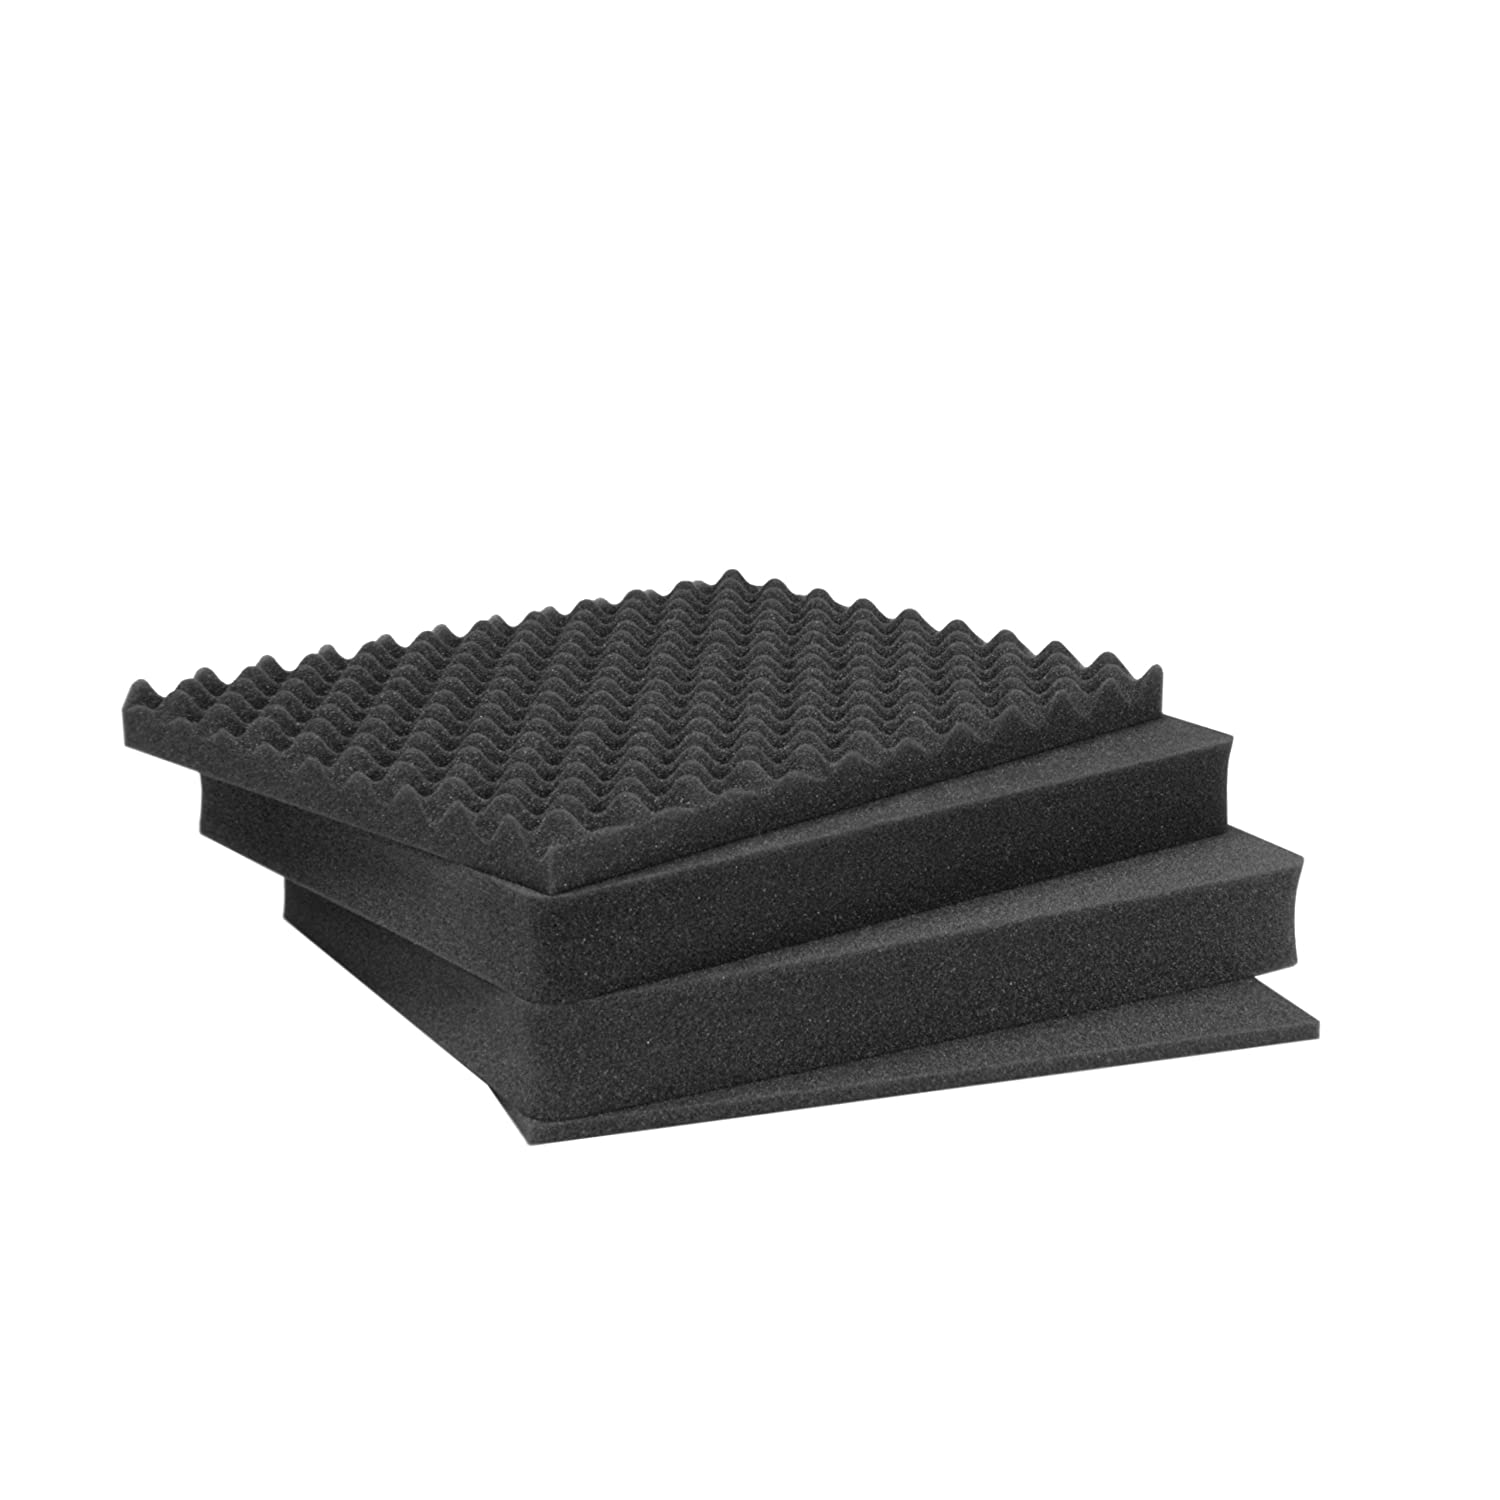 Foam inserts (3 part) for 945 Nanuk Case Plasticase Inc 945-FOAM